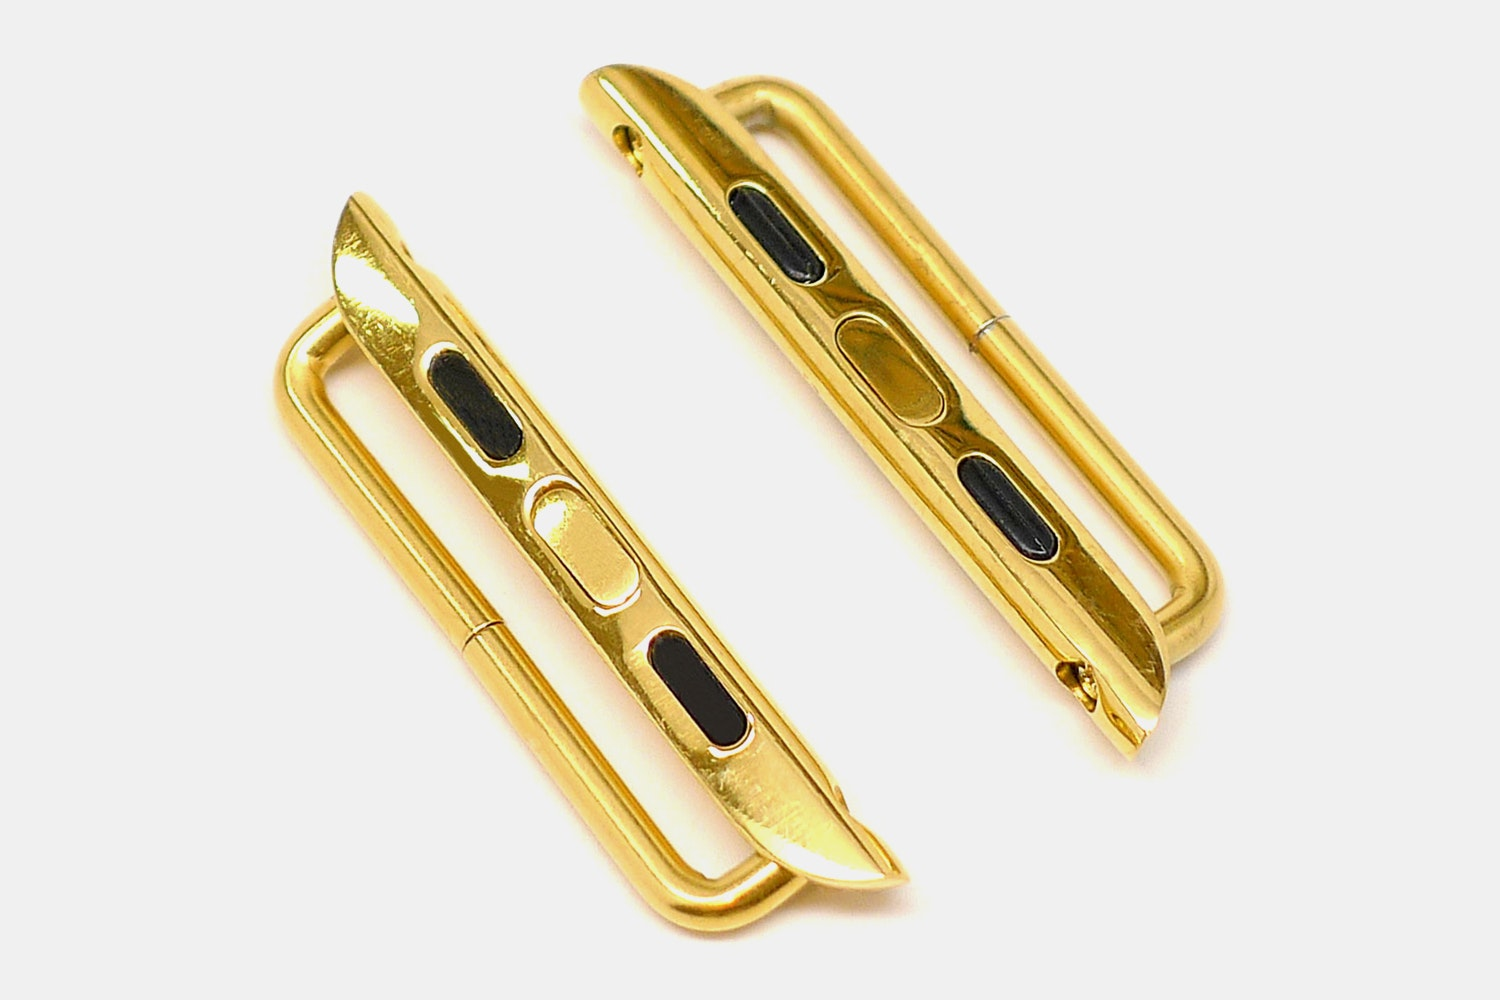 Apple Watch adapter (Gold) (+ $15)